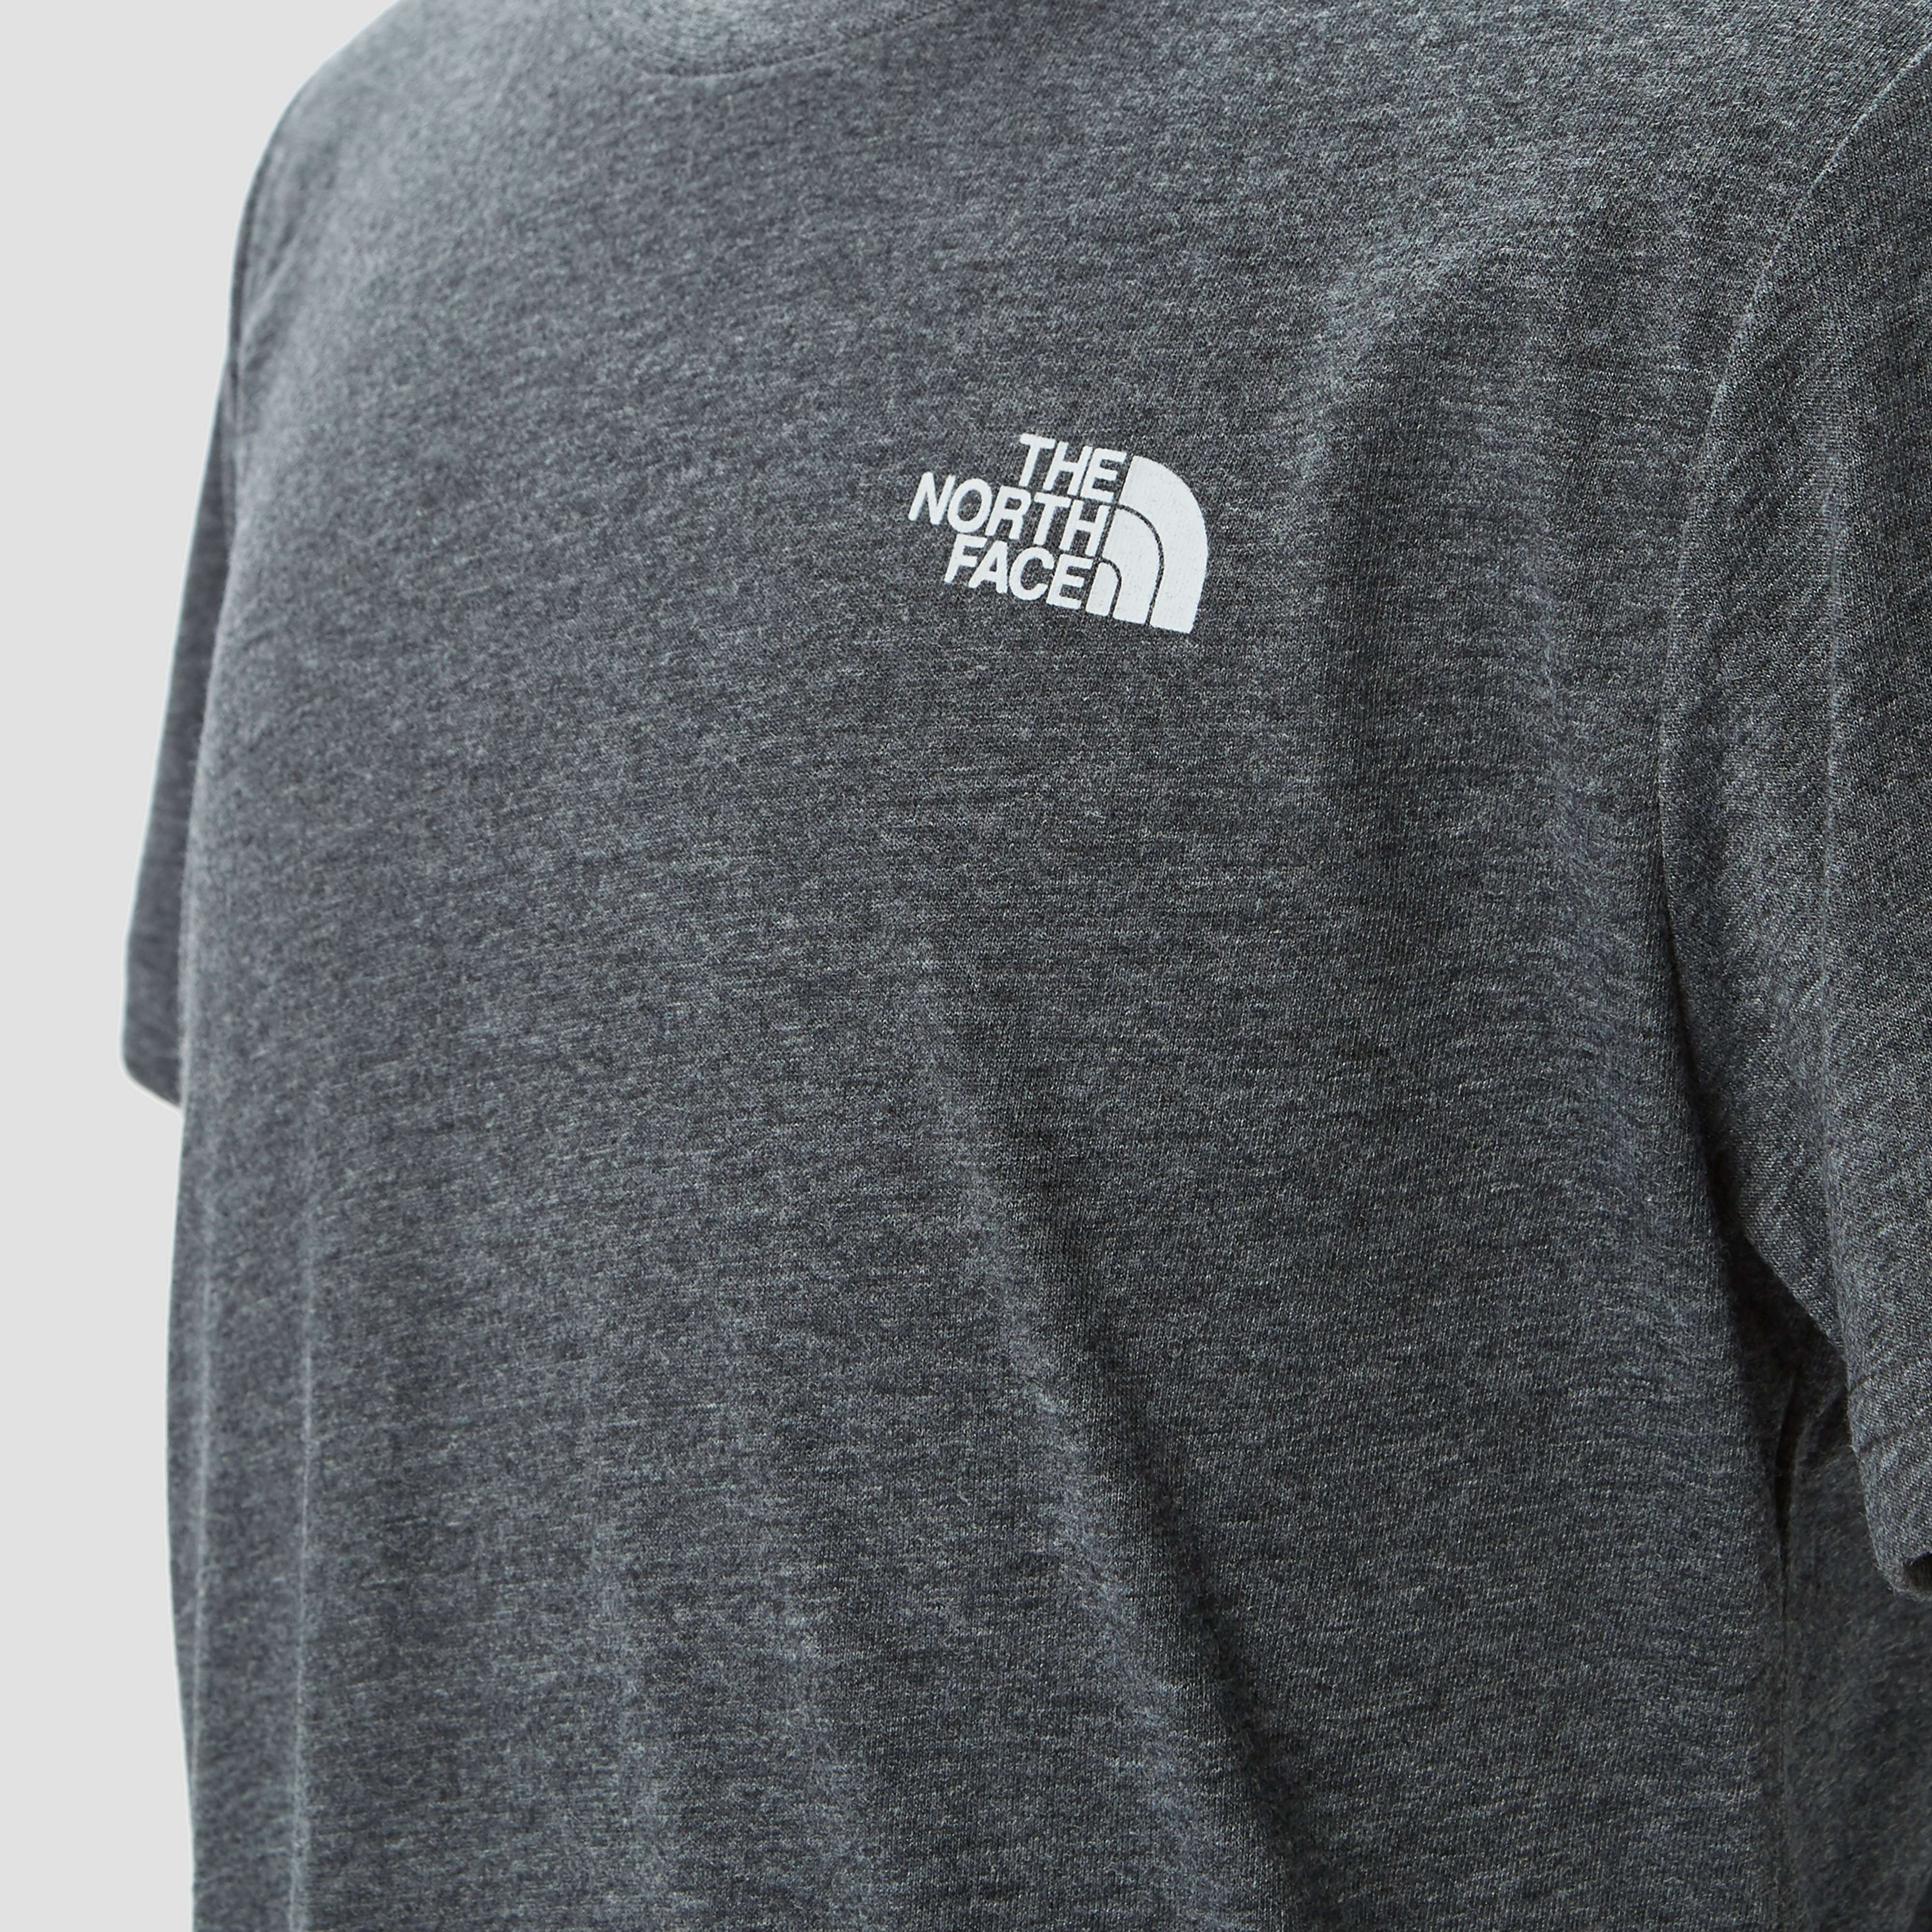 THE NORTH FACE SIMPLE DOME SHIRT GRIJS KINDEREN